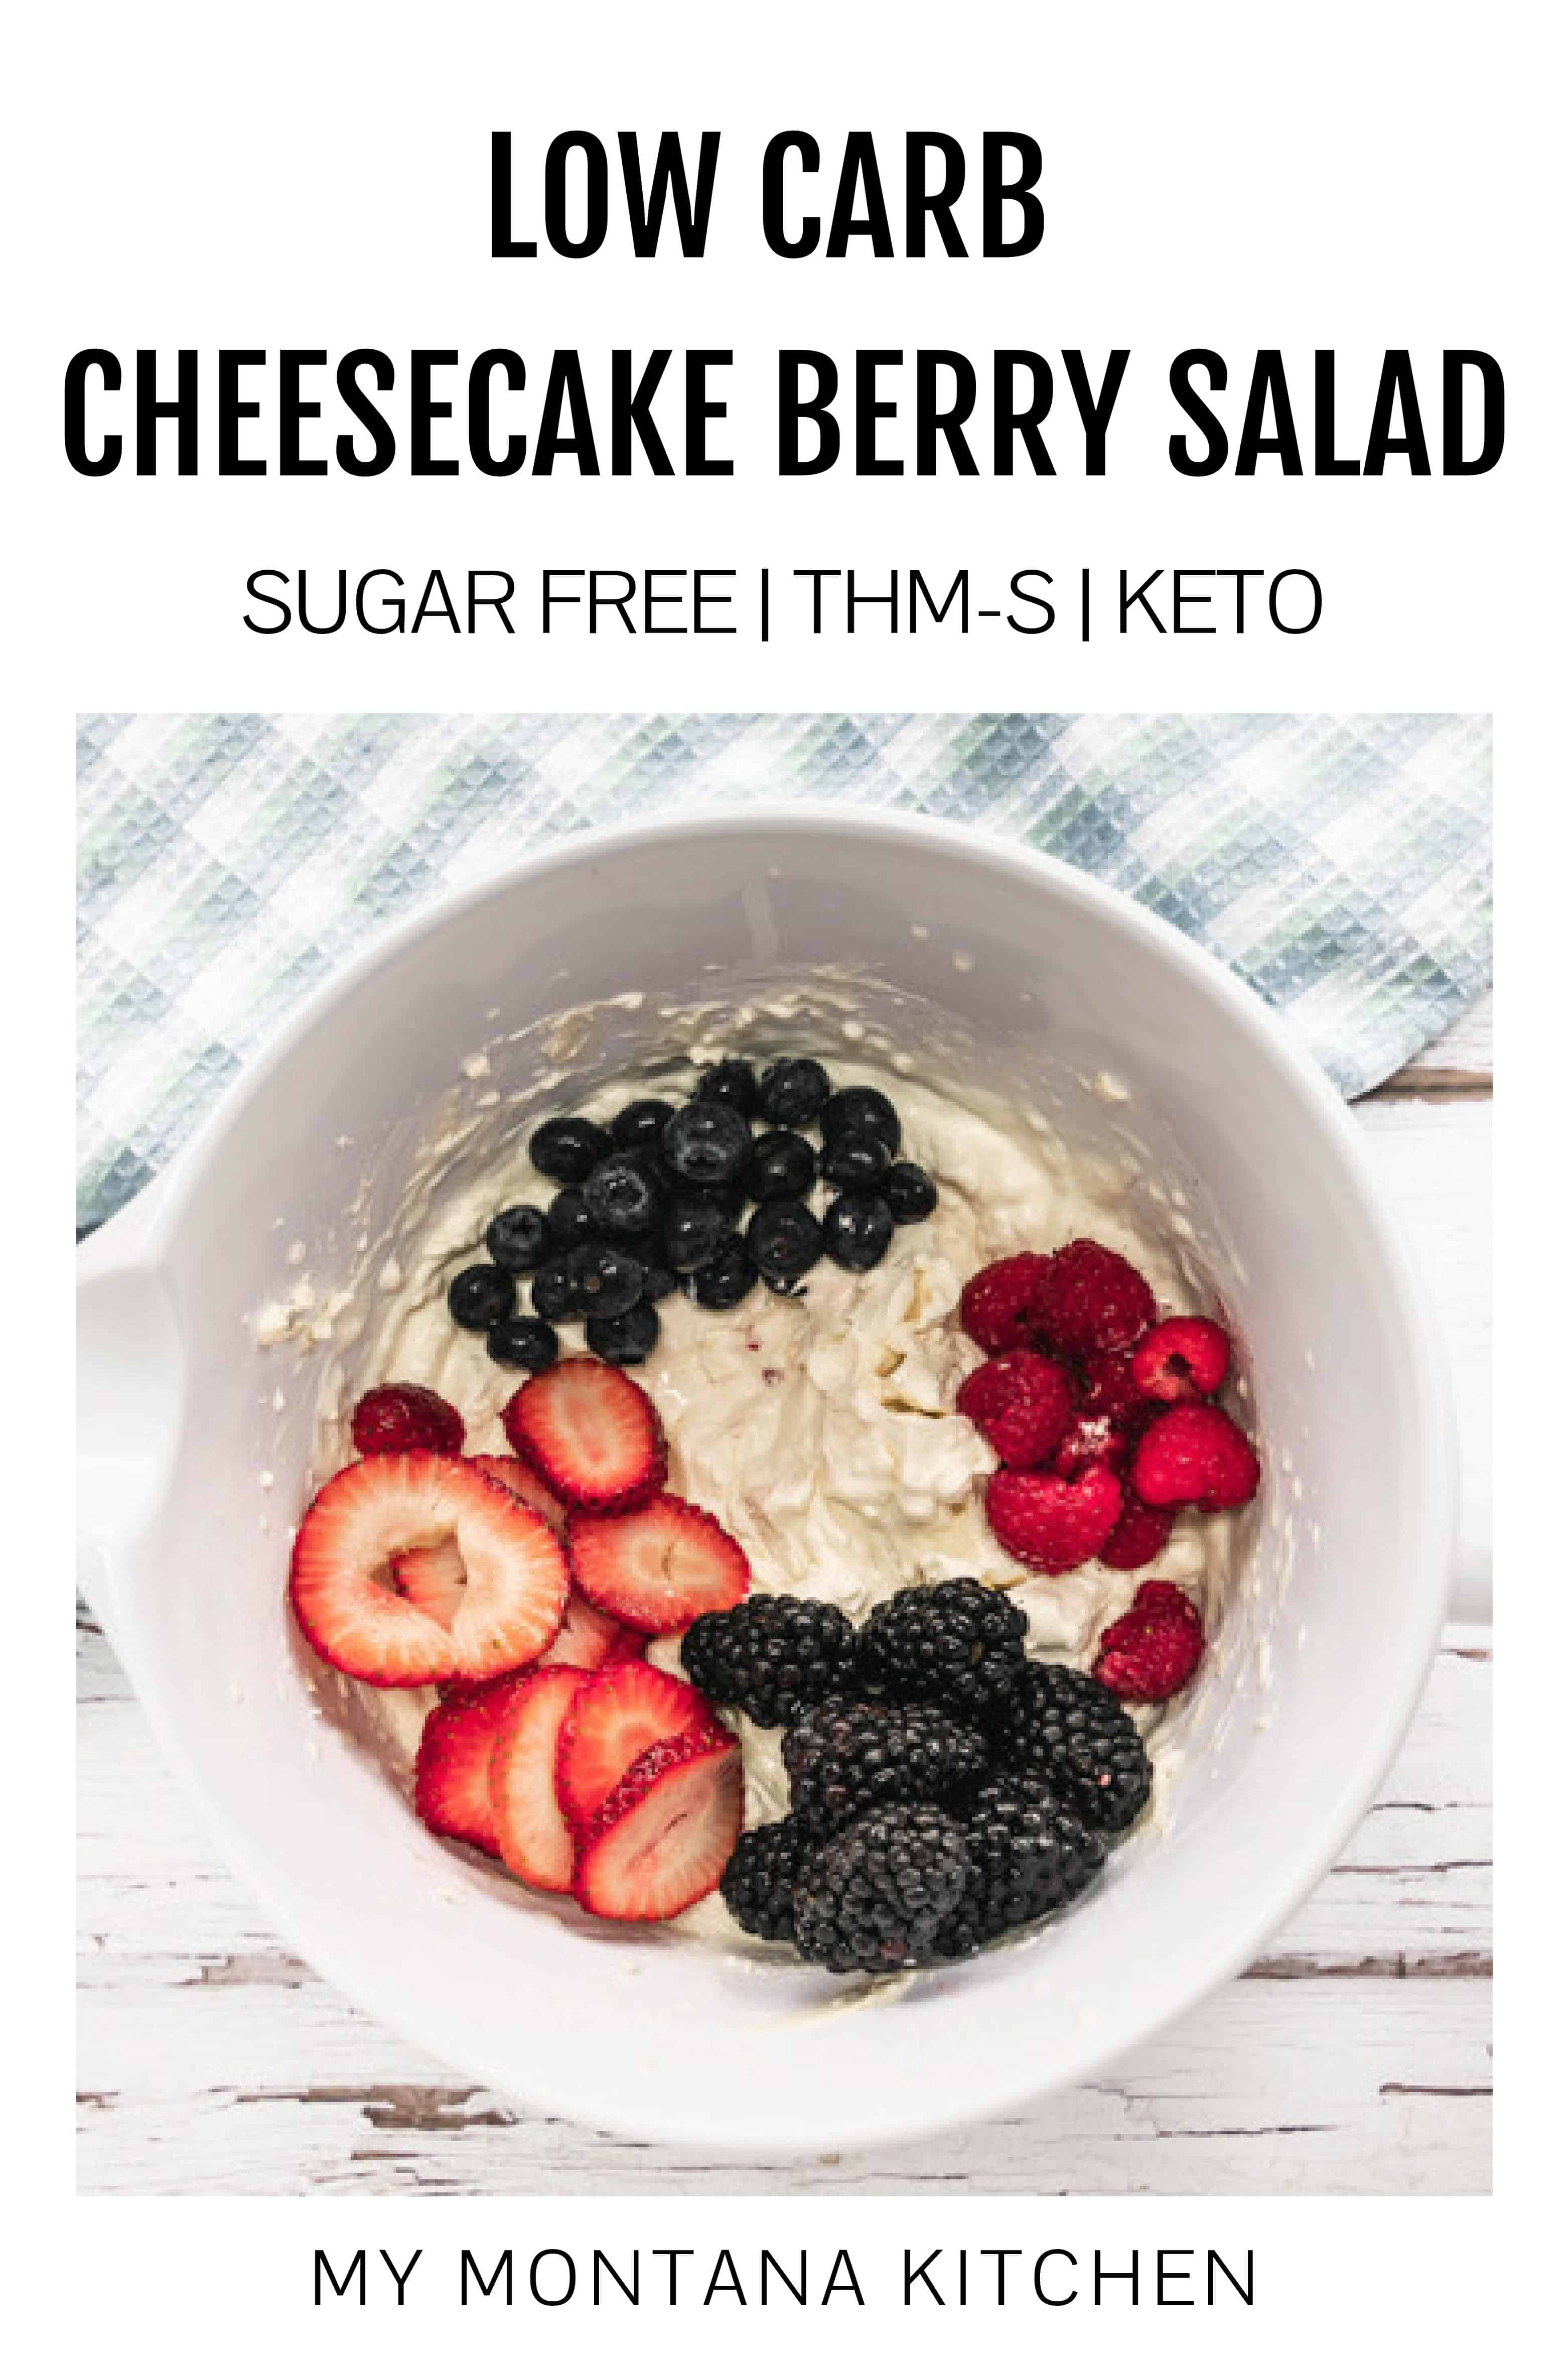 """This easy Cheesecake Berry Salad recipe works for keto, THM, and it is also sugar free. Fresh berries wrapped in a cheesecake """"fluff"""" make an excellent dessert or side! #cheesecakeberrysalad #thm #keto"""